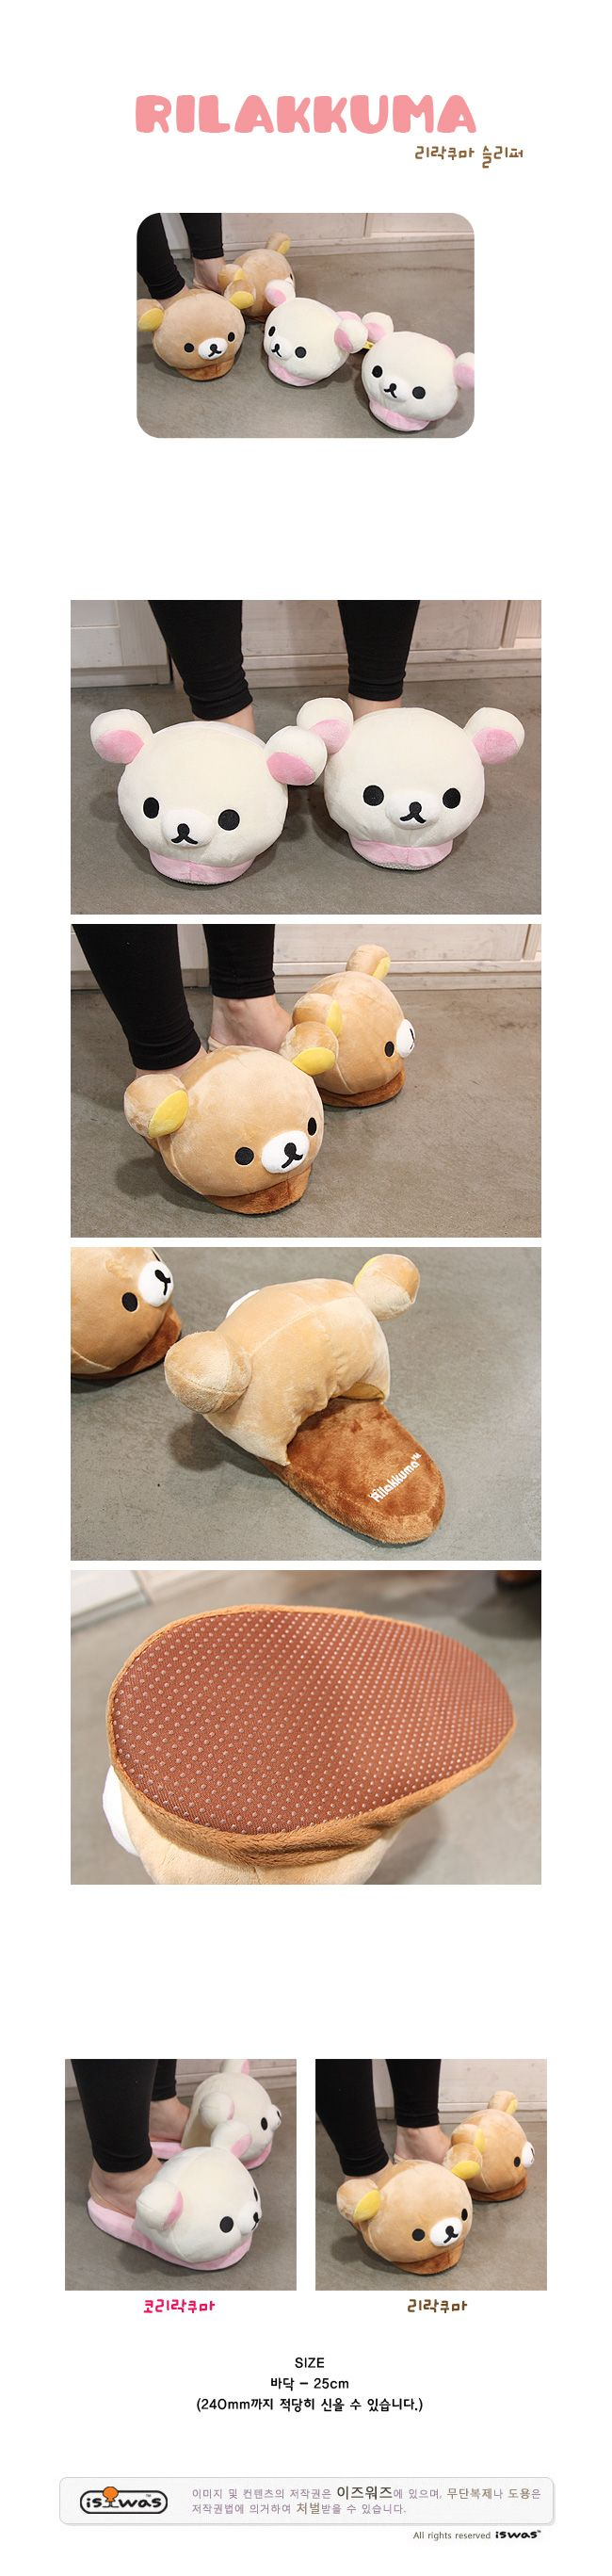 Best Rilakkuma Anime Adorable Dog - b24f02246f246df116d5603258dad30b--cute-slippers-rilakkuma  Gallery_304998  .jpg